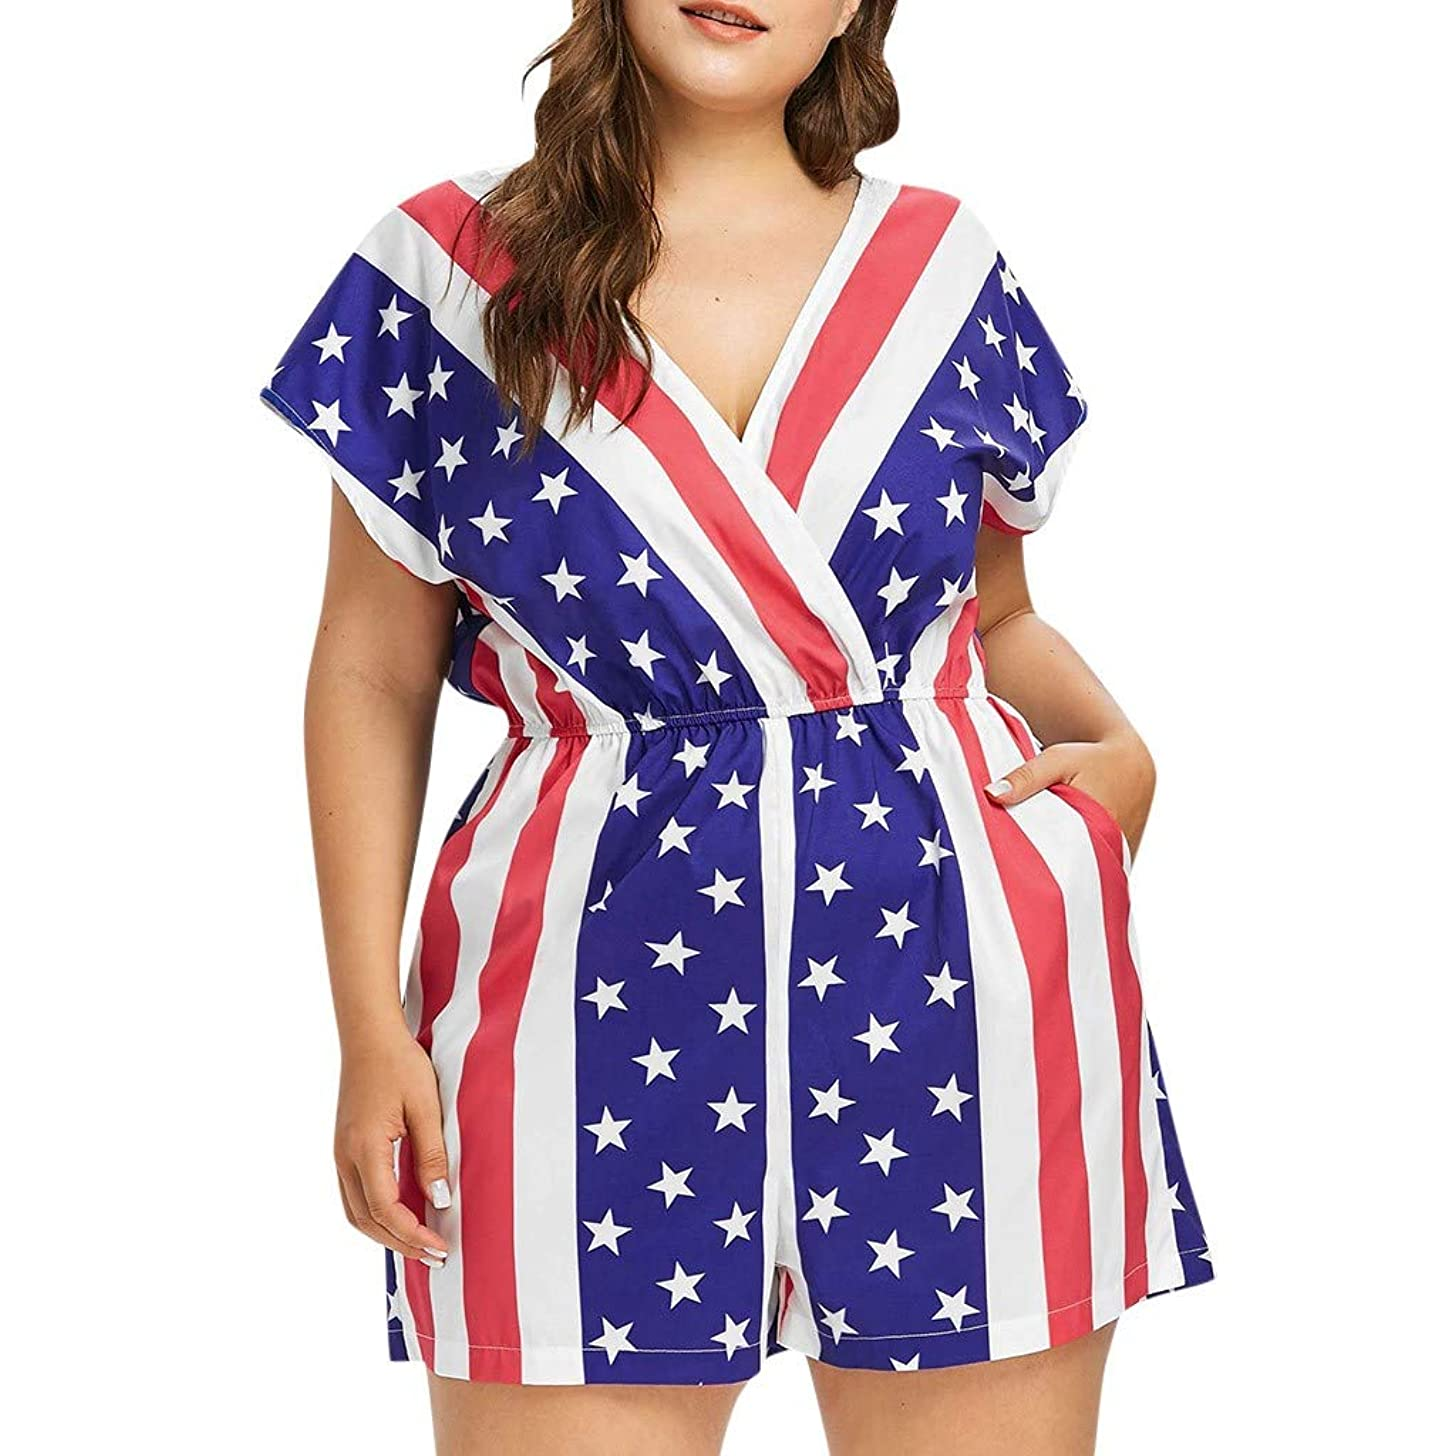 Pumsun ?? Women American Flag Print Plus Size Romper Jumpsuit for 4th of July